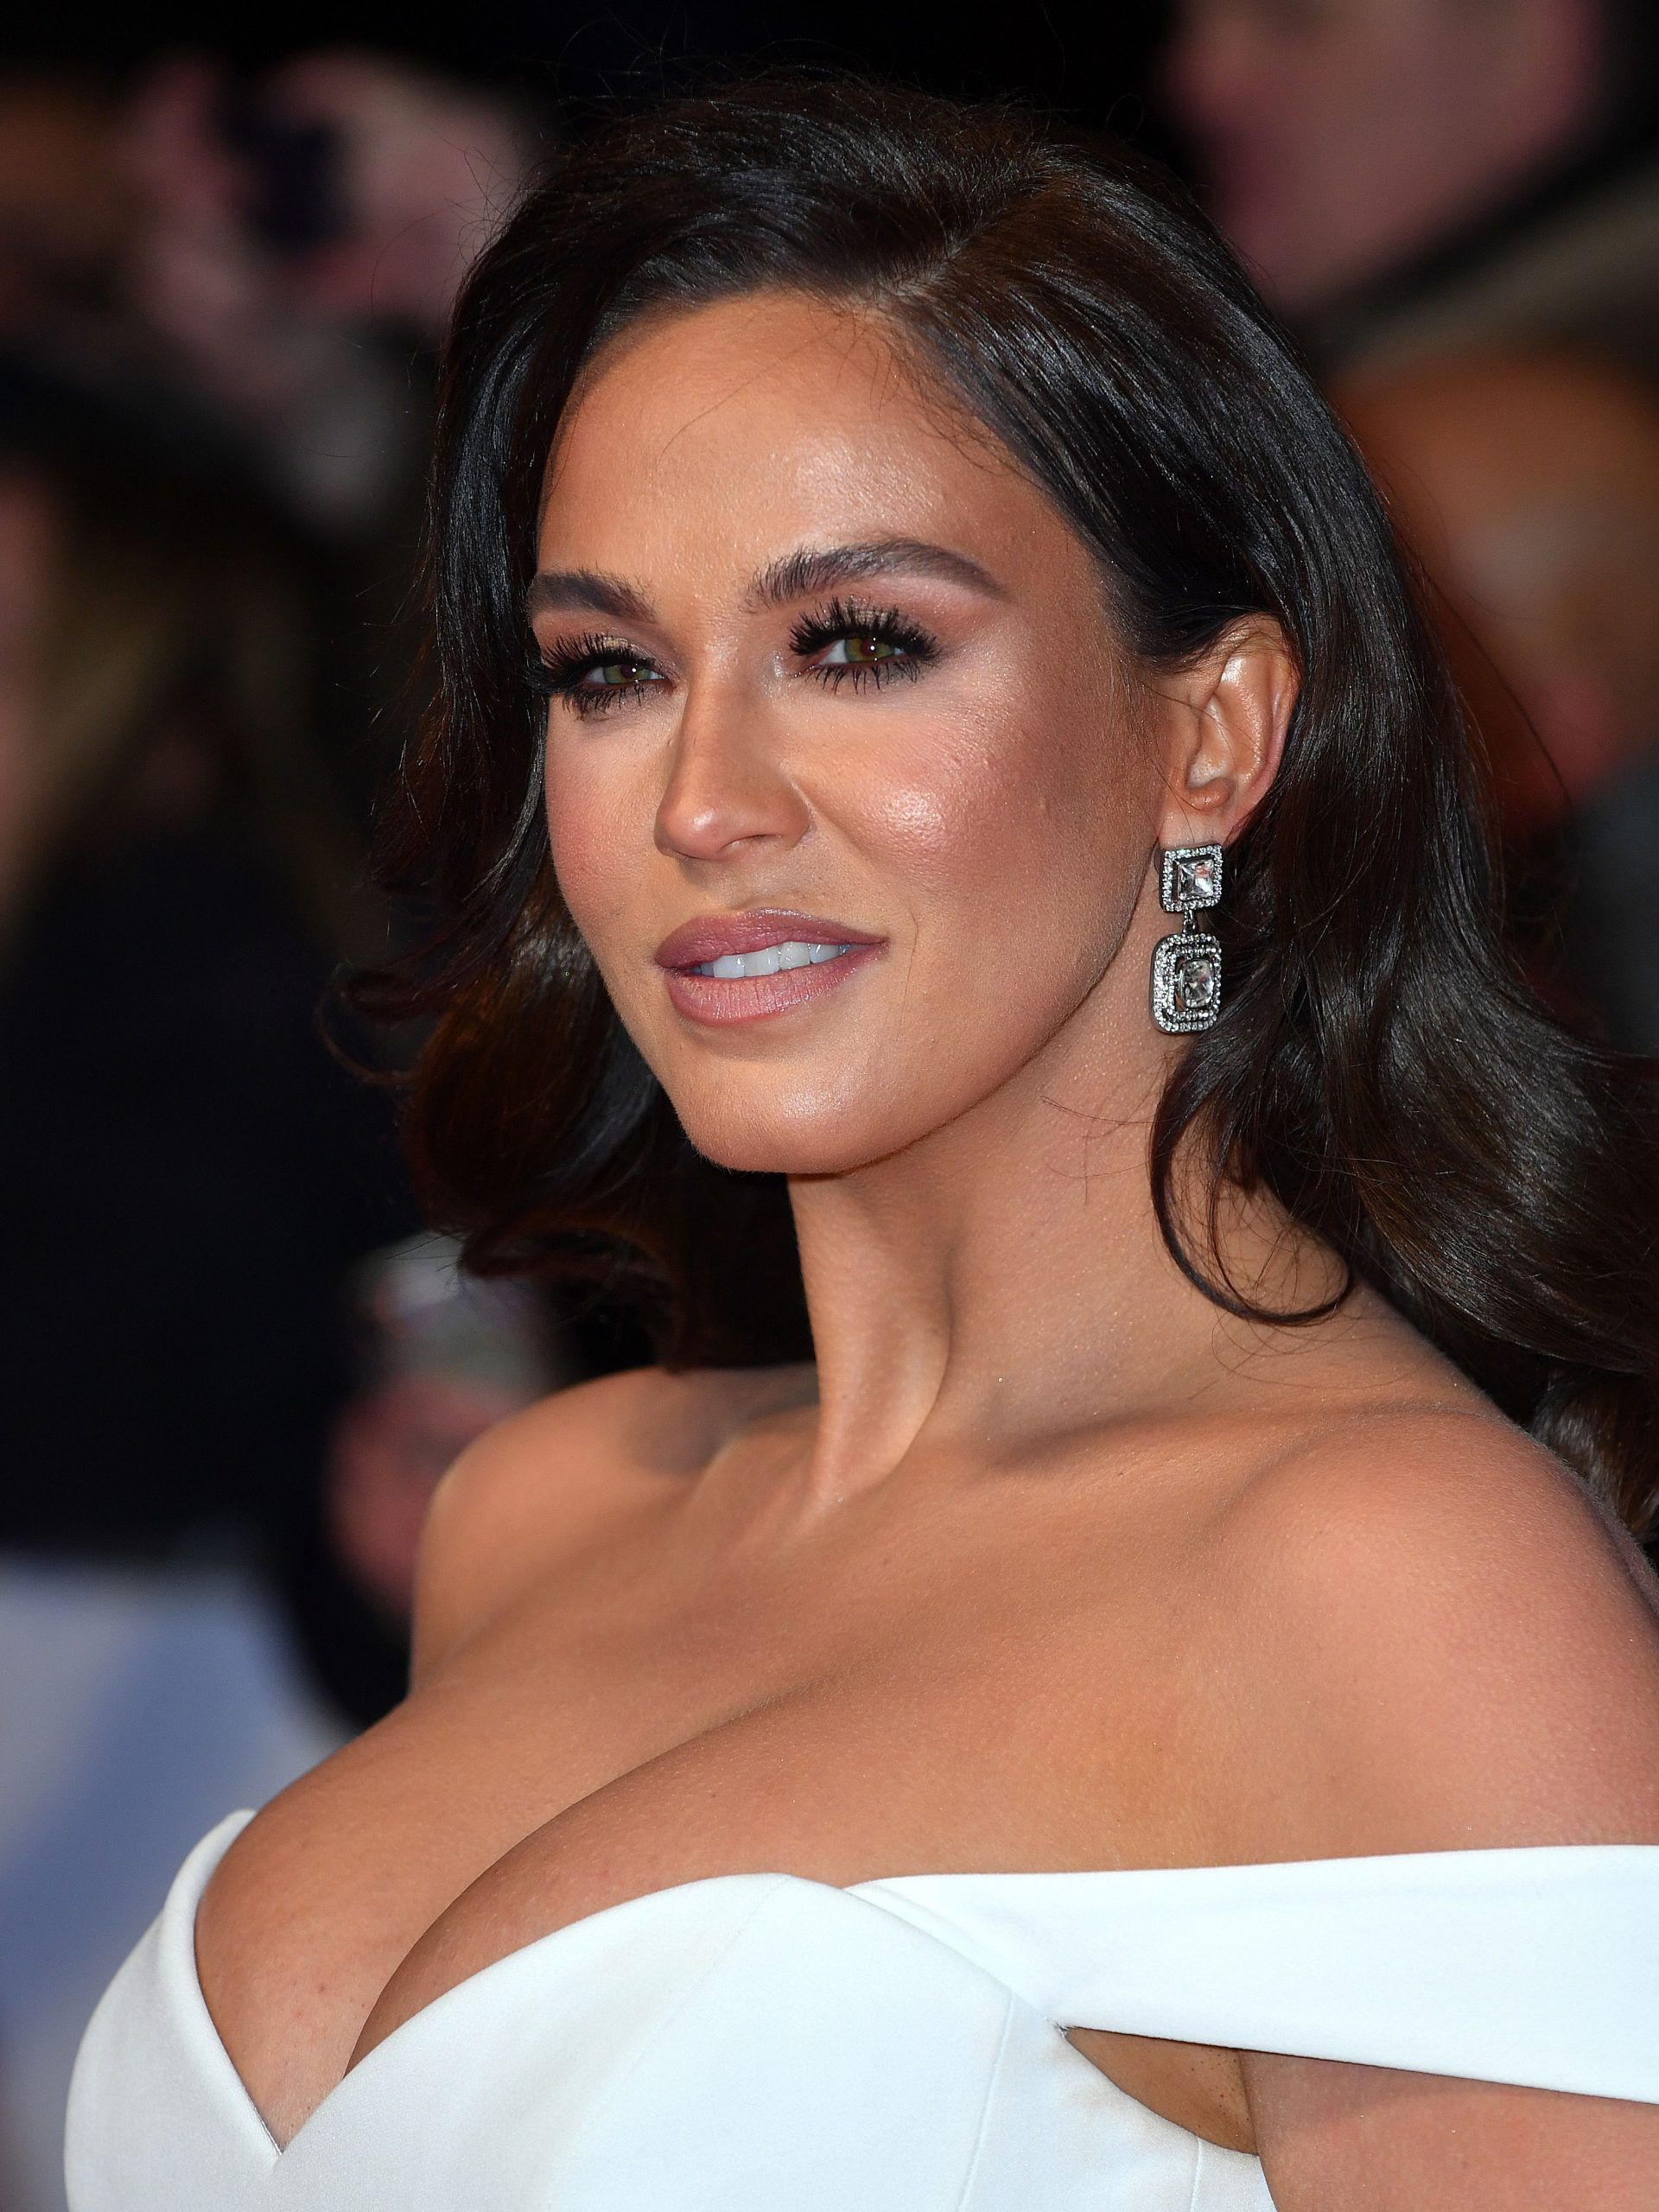 Vicky Pattison reveals unexpected reason she was proud of herself after the NTAs